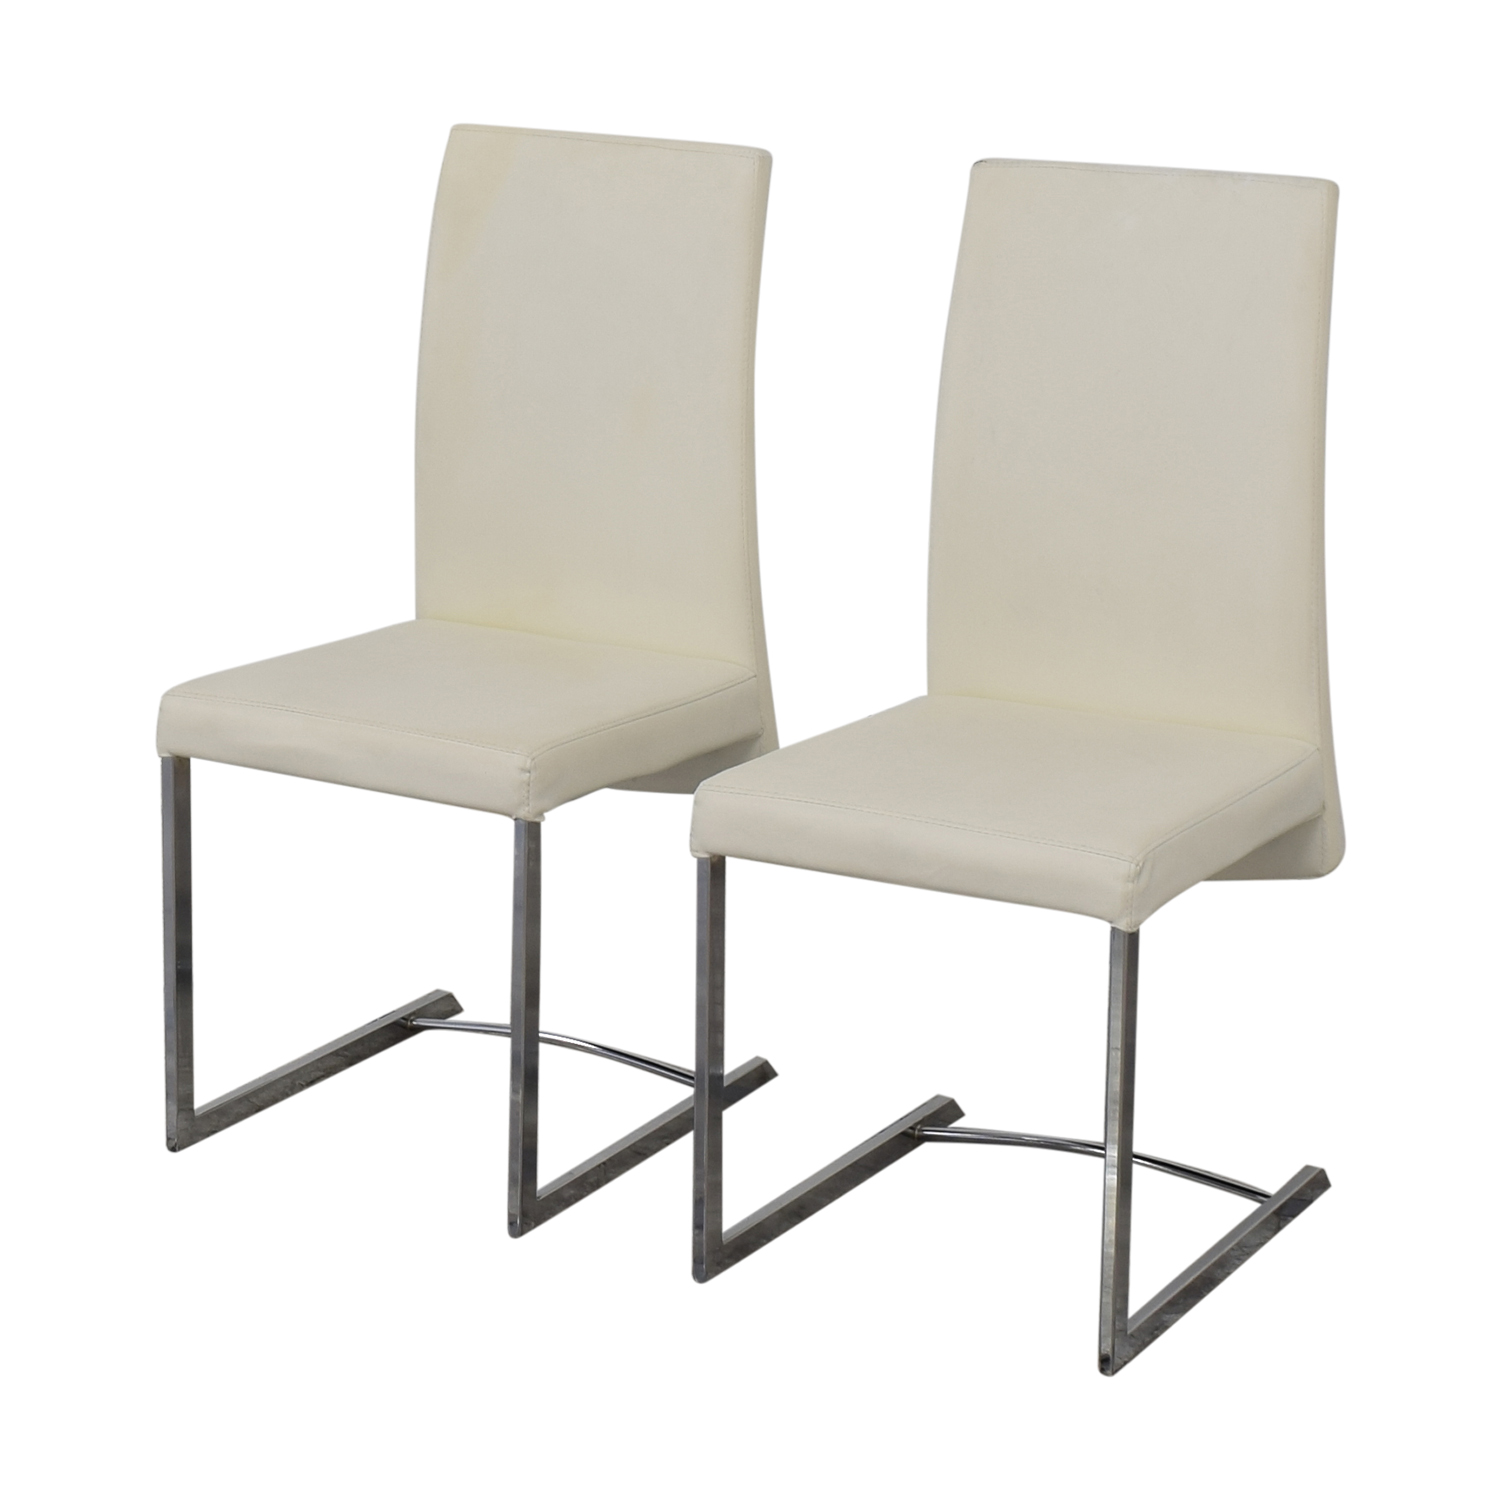 Creative Furniture Fabio Leather Chairs / Dining Chairs